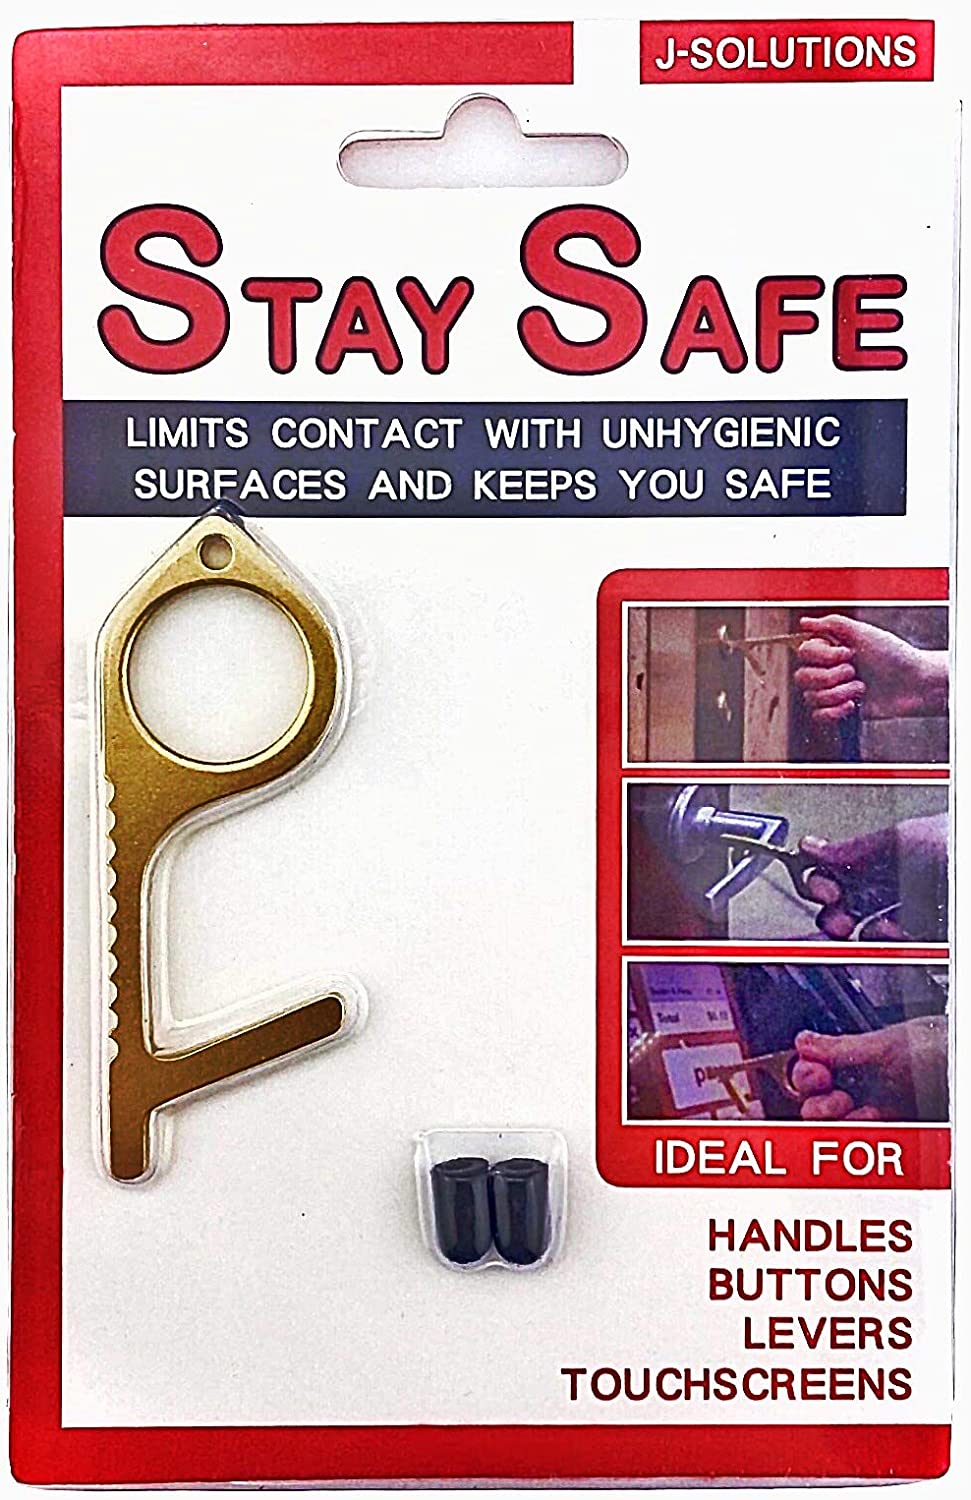 Stay safe No touch door opener/door opener tool, touchless door opener. Contactless door opener & button pushing tool, for dirty surfaces handles buttons. Comfortable on your finger and easy to use.